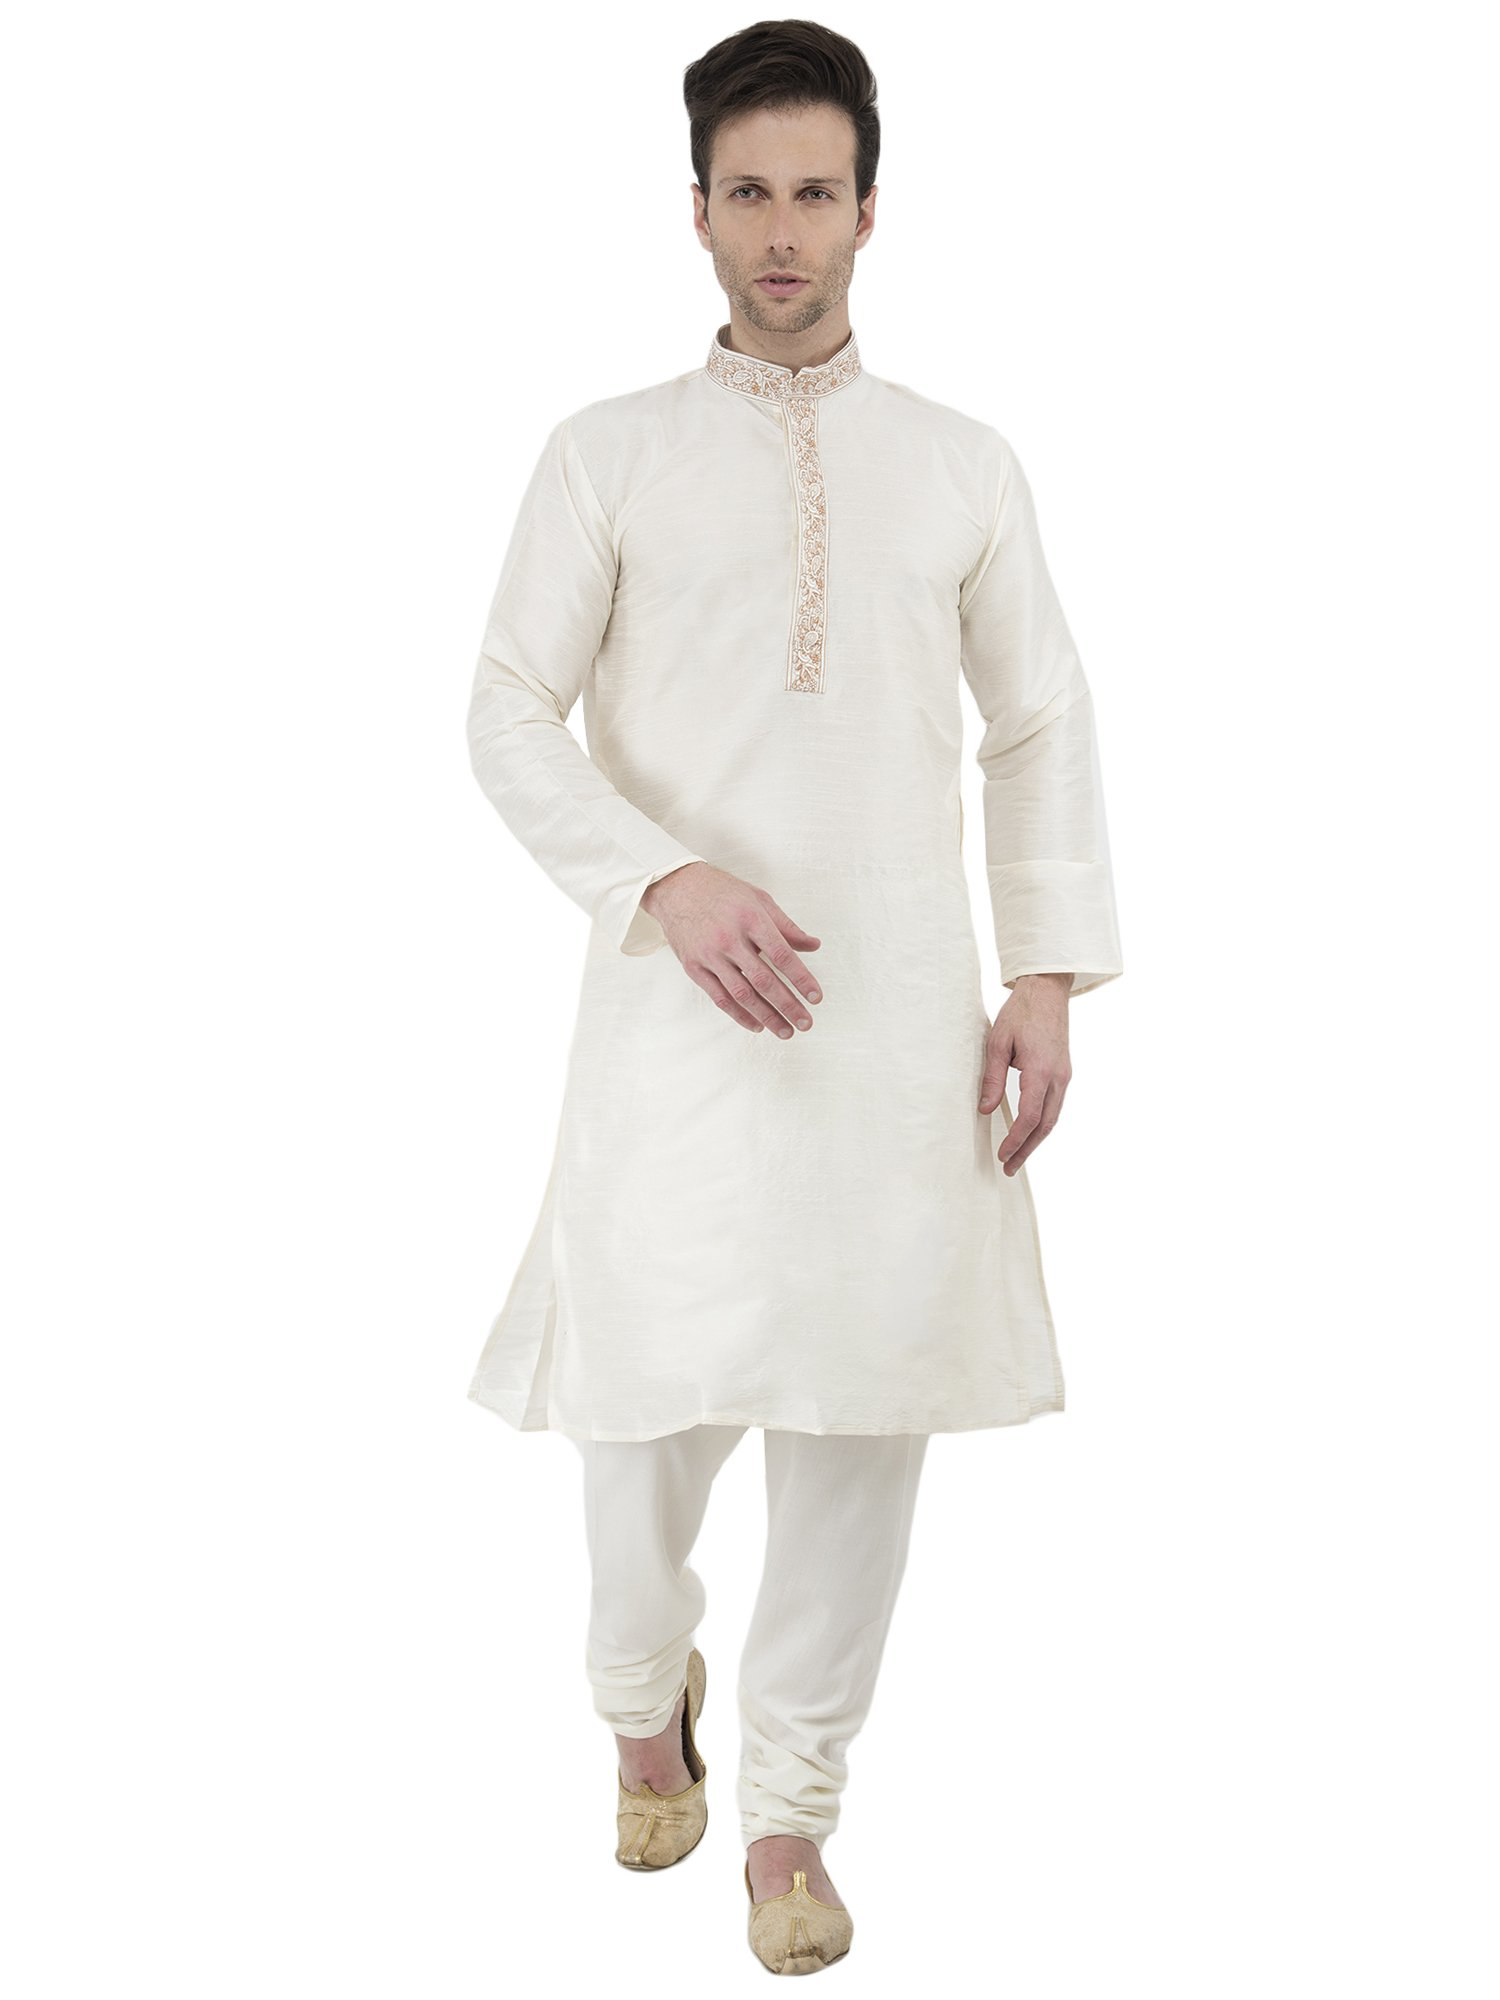 Long Sleeve Button Down Shirt Mens Kurta Pajamas Set Handmade Traditional Indian Costume Offwhite -M